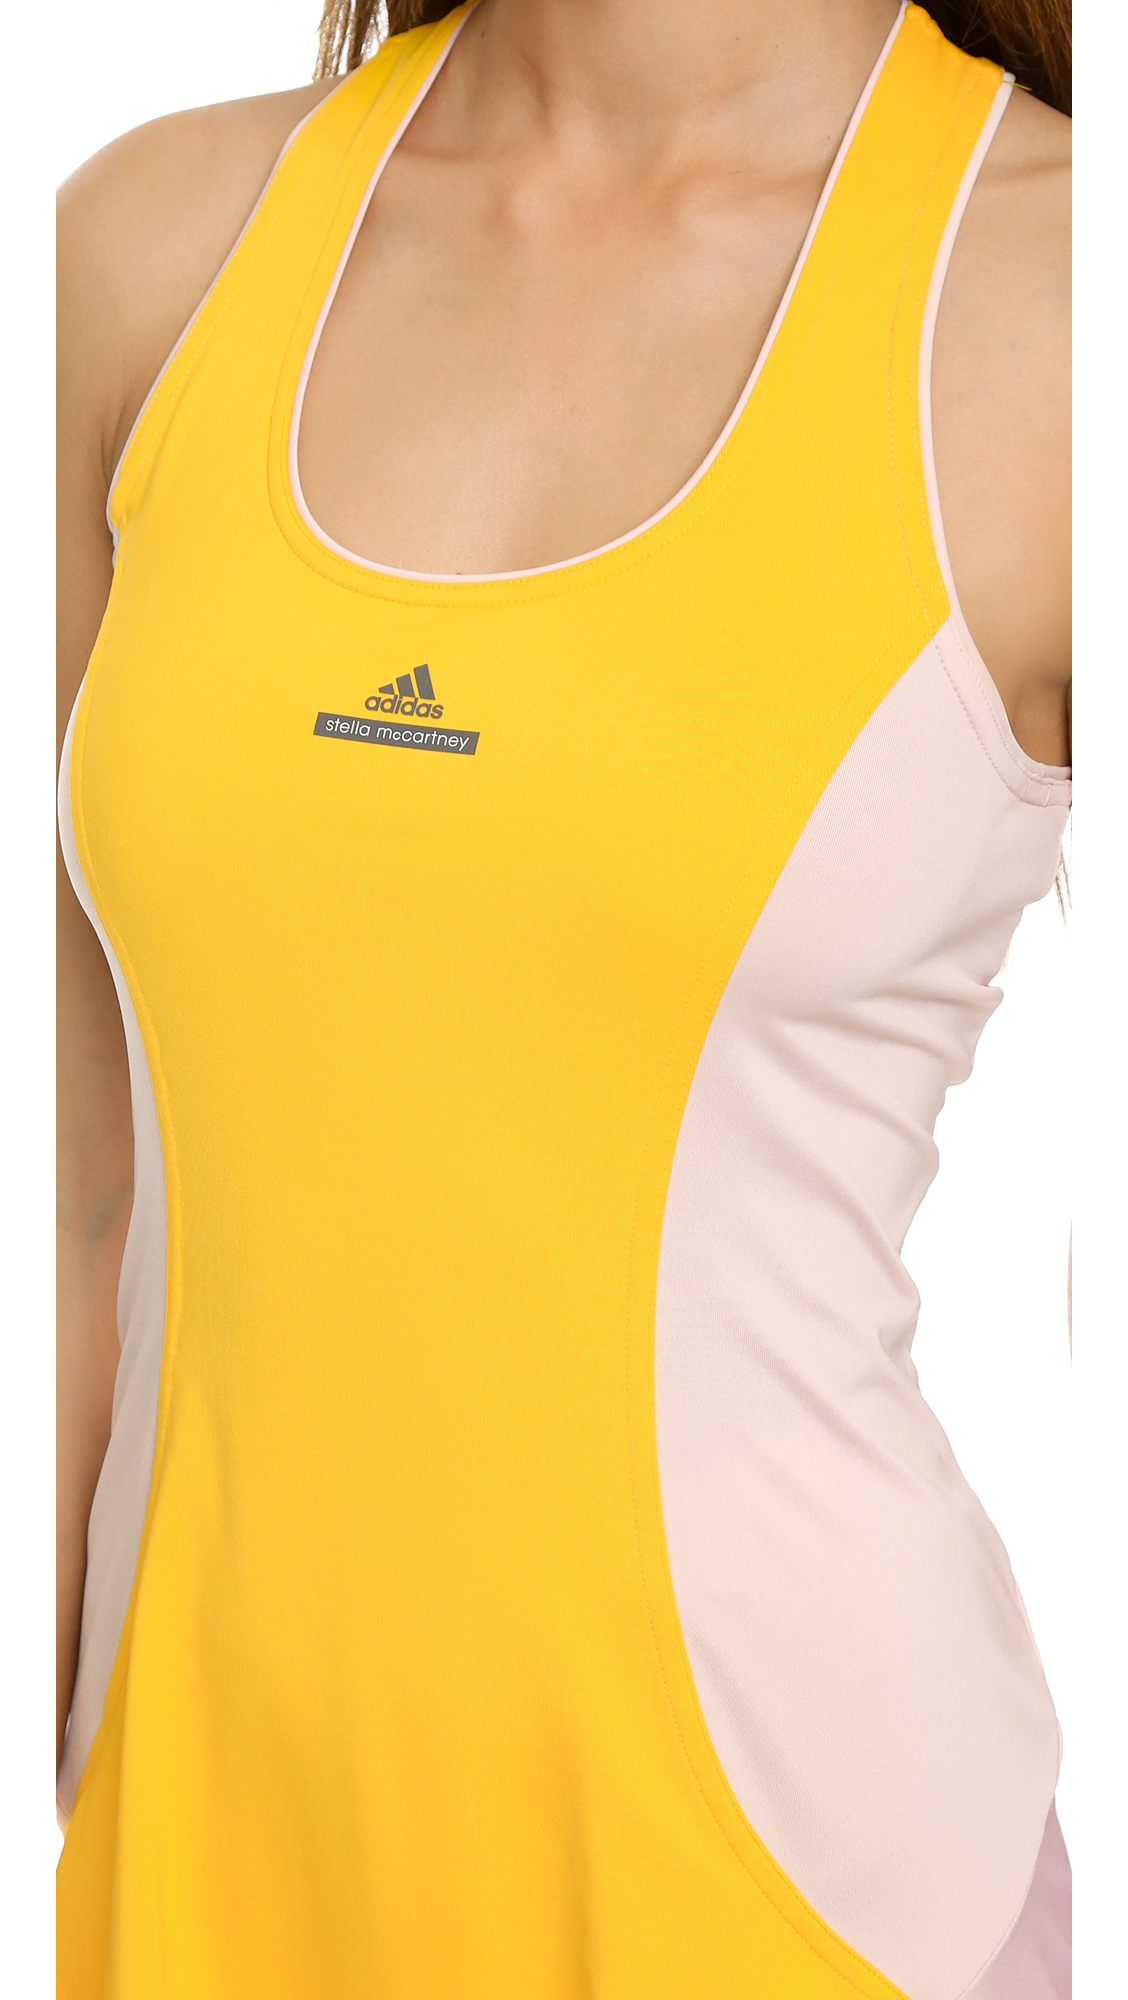 Lyst - adidas By Stella McCartney Tennis Dress in Pink